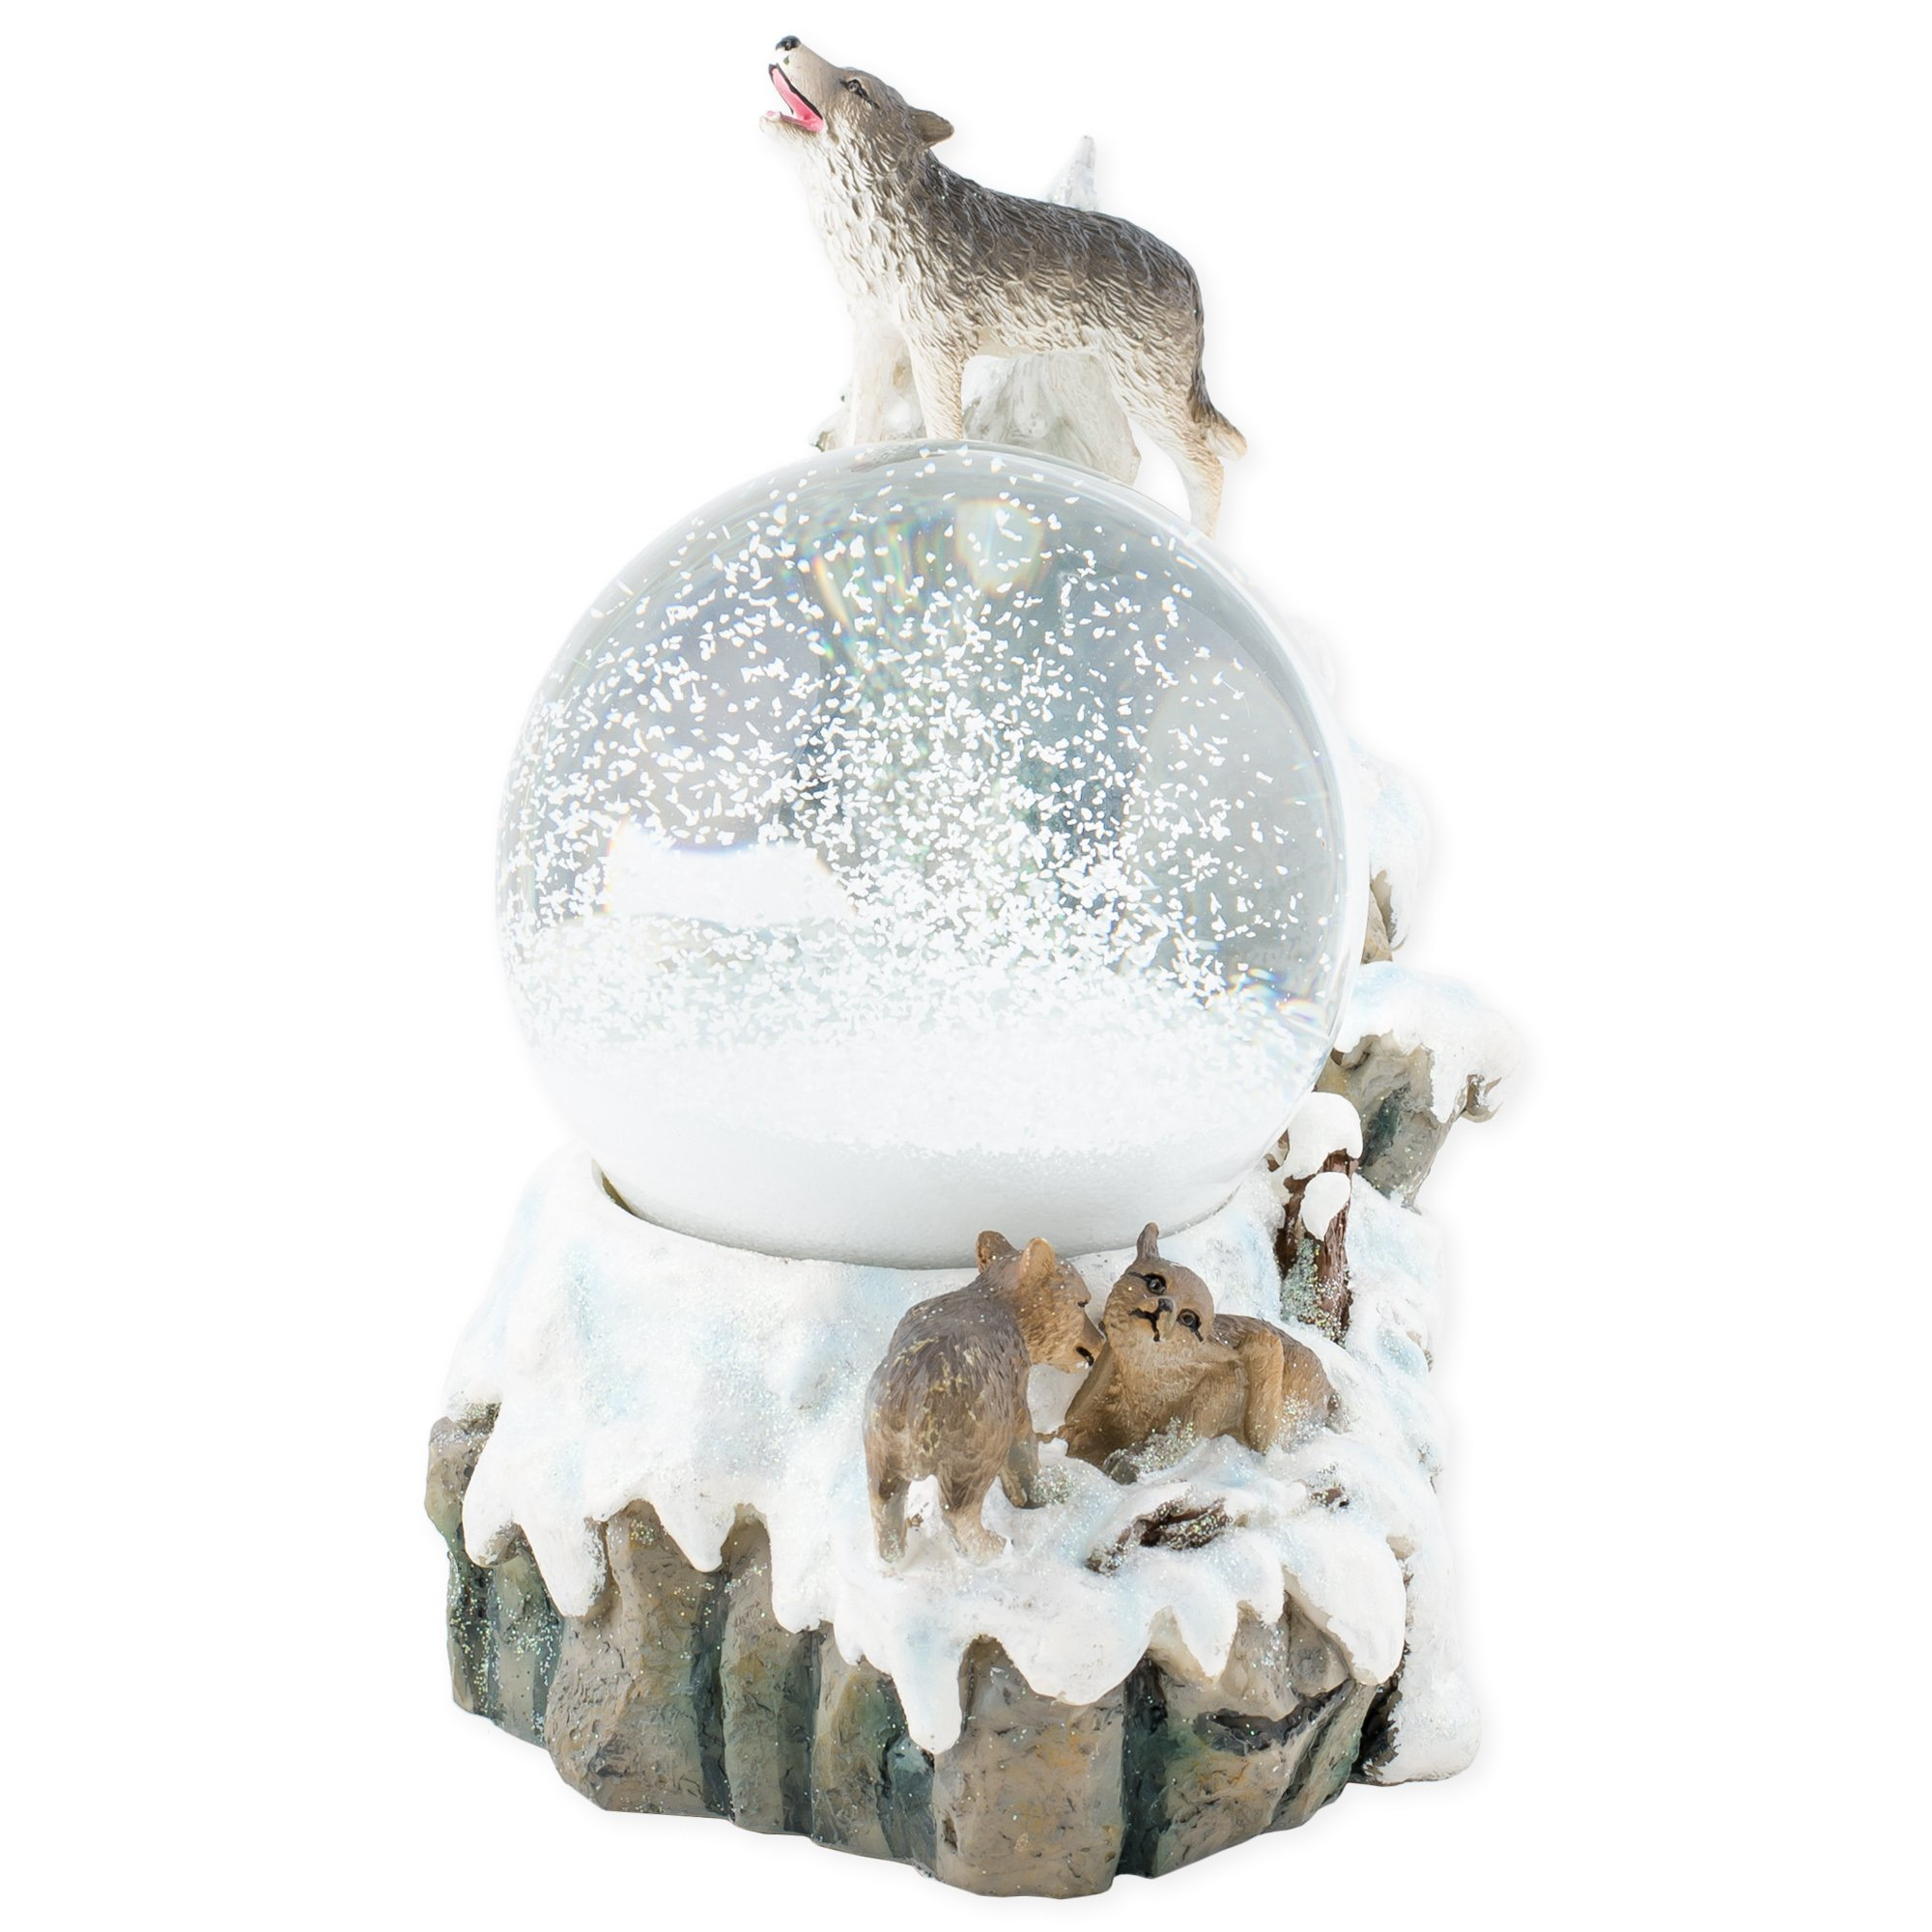 Howling Glitter Wolf with Babies 100mm Resin 3D Water Globe Plays Tune Born Free